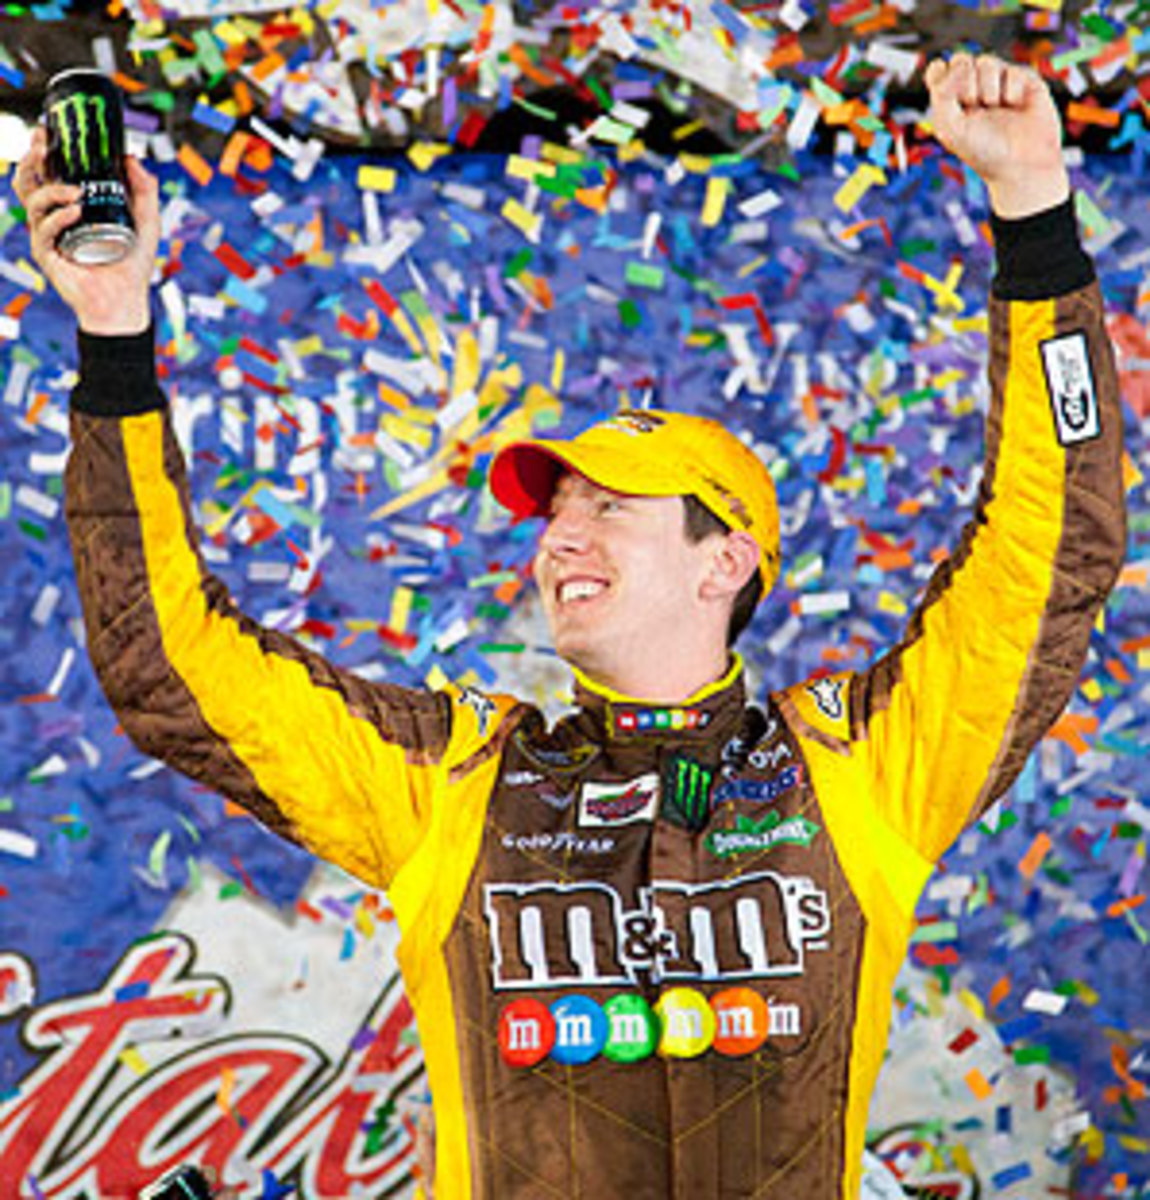 Kyle Busch last won in April at Richmond, but it's likely that he'll need one more win to secure a wild card in the Chase.